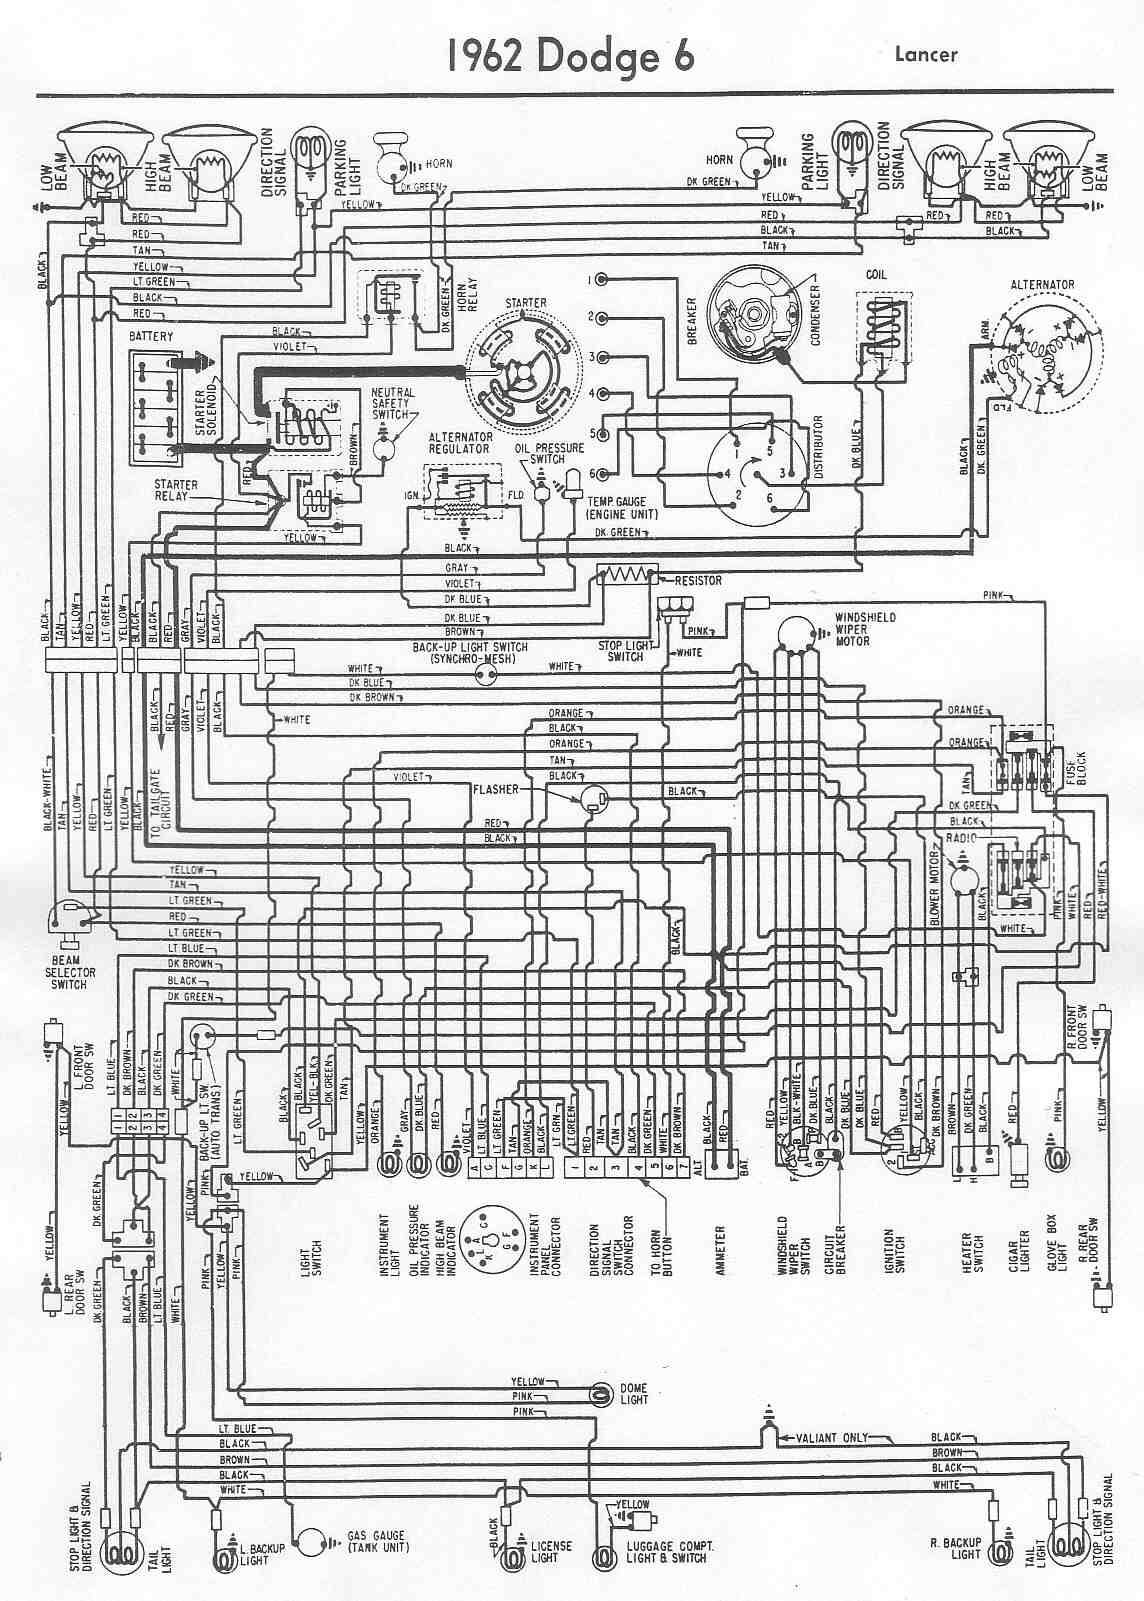 1959 Ford F100 Wiring Diagram Schematic Diagrams For 6 All Models Lancer Pdf Smart U2022 1966 Galaxie 500